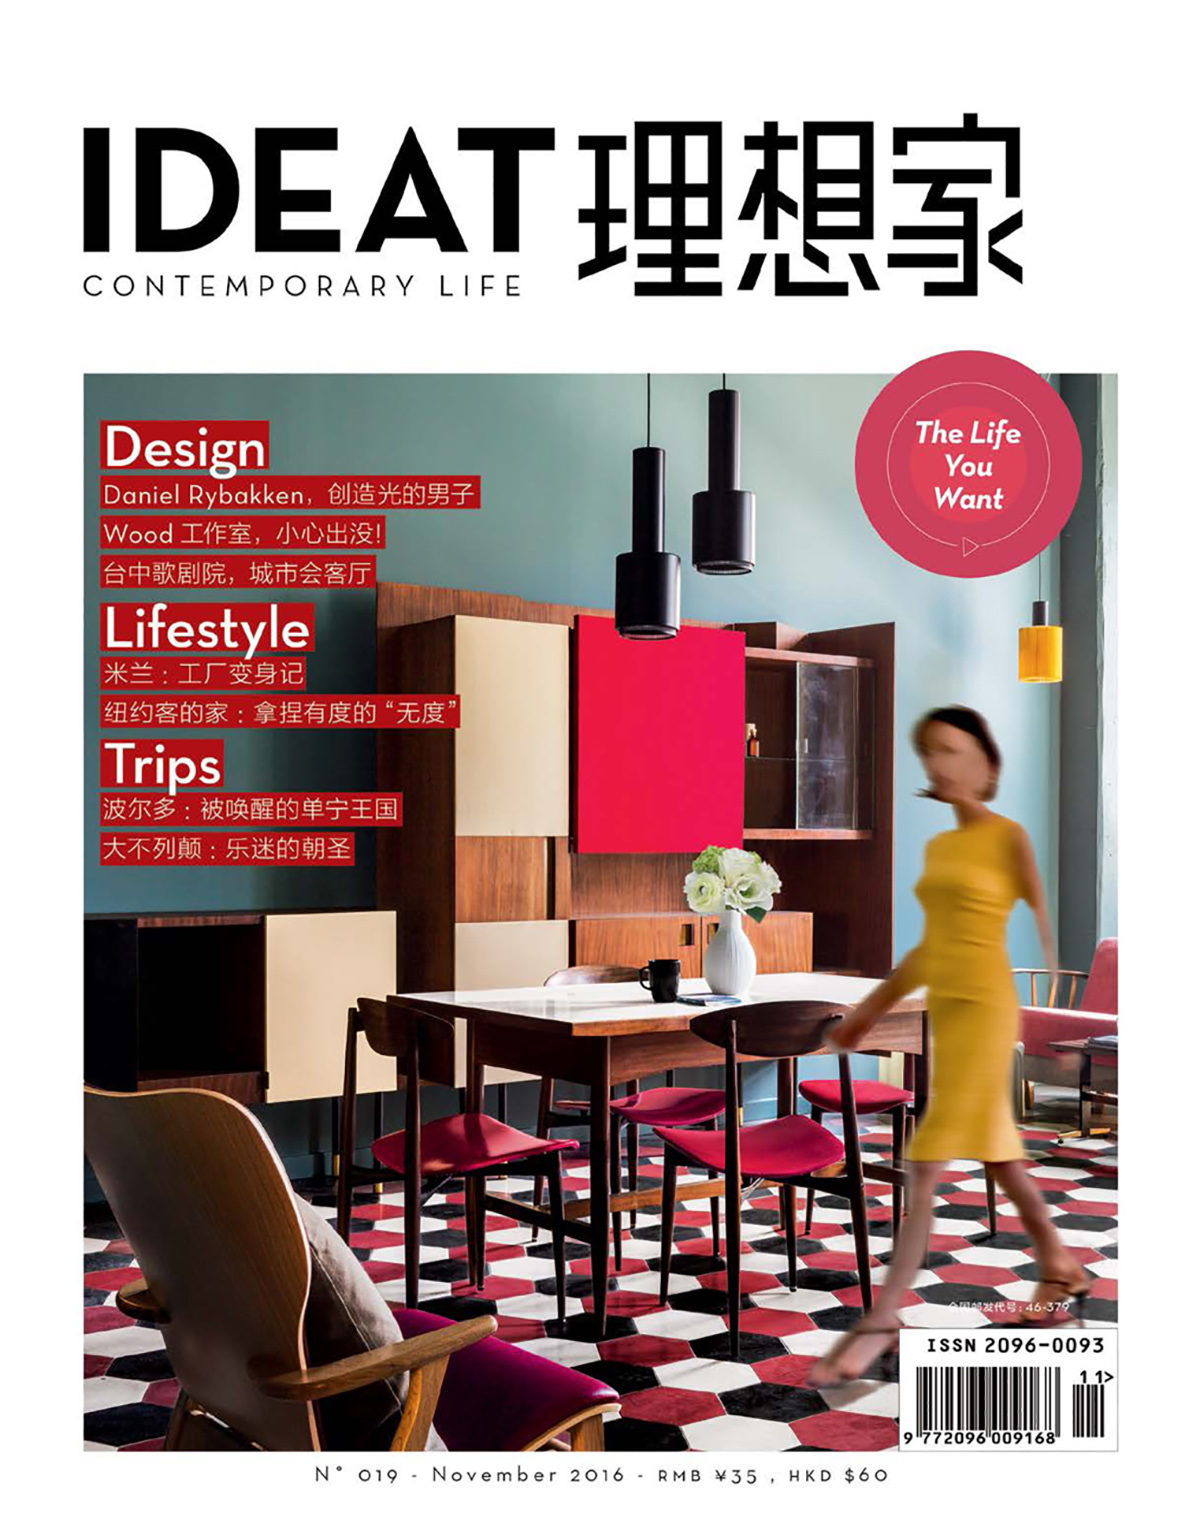 Parution presse IDEAT CHINA 2017 Claude Cartier décoration architecte d'intérieur à Lyon.